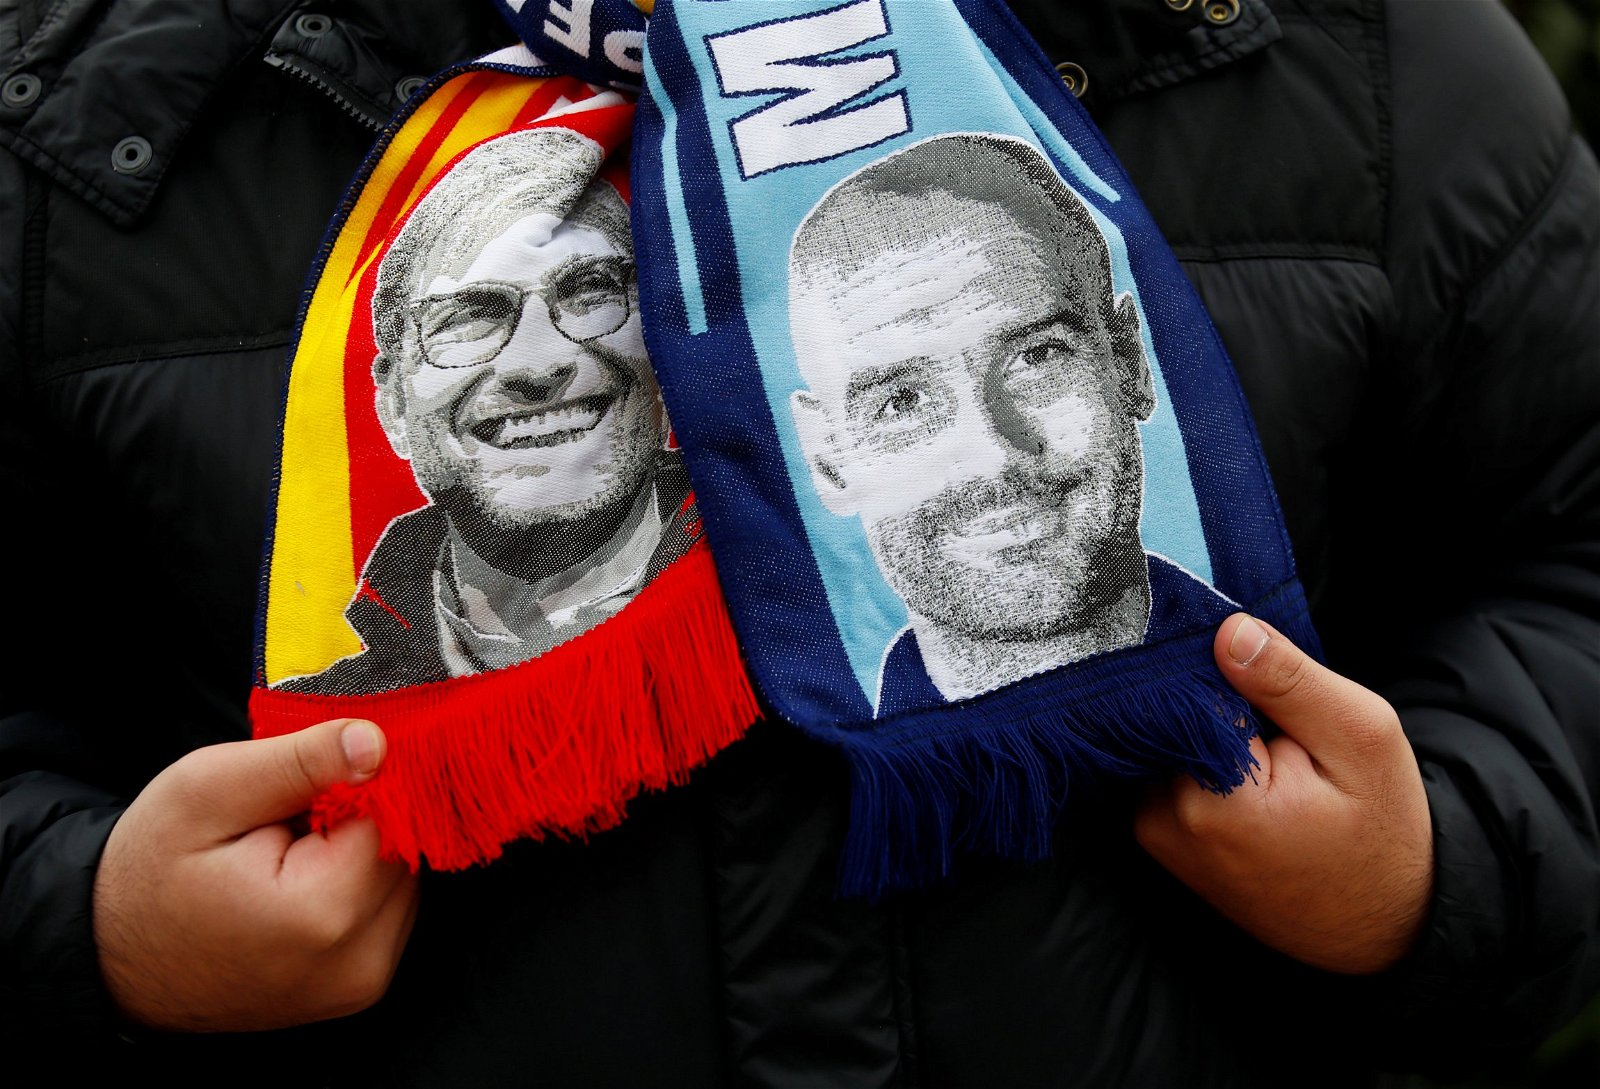 Jurgen Klopp and Pep Guardiola scarves